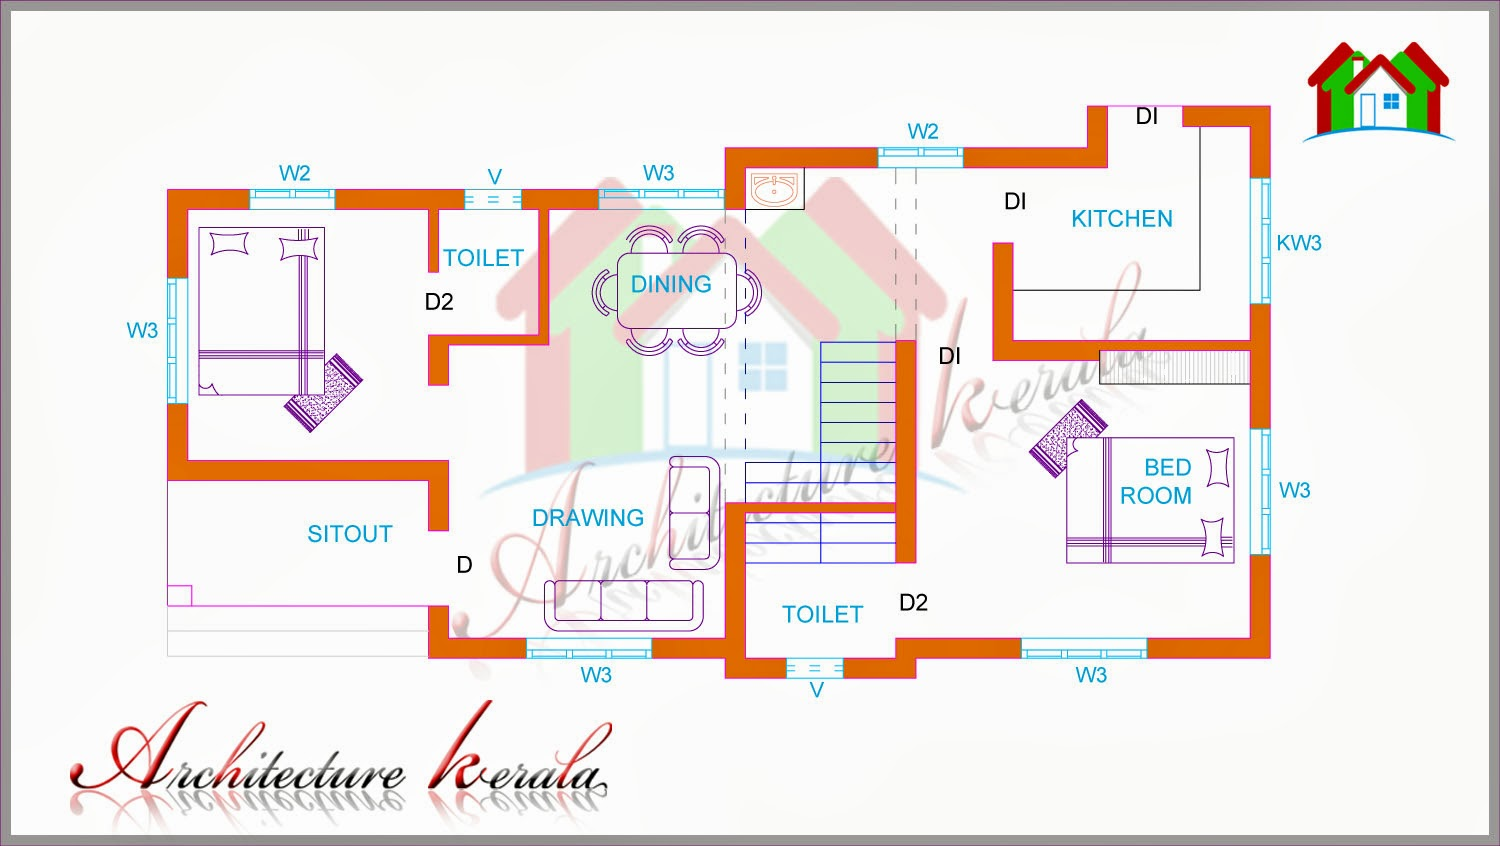 Two bedroom house plan for small families small plots for House plans in kerala with 2 bedrooms